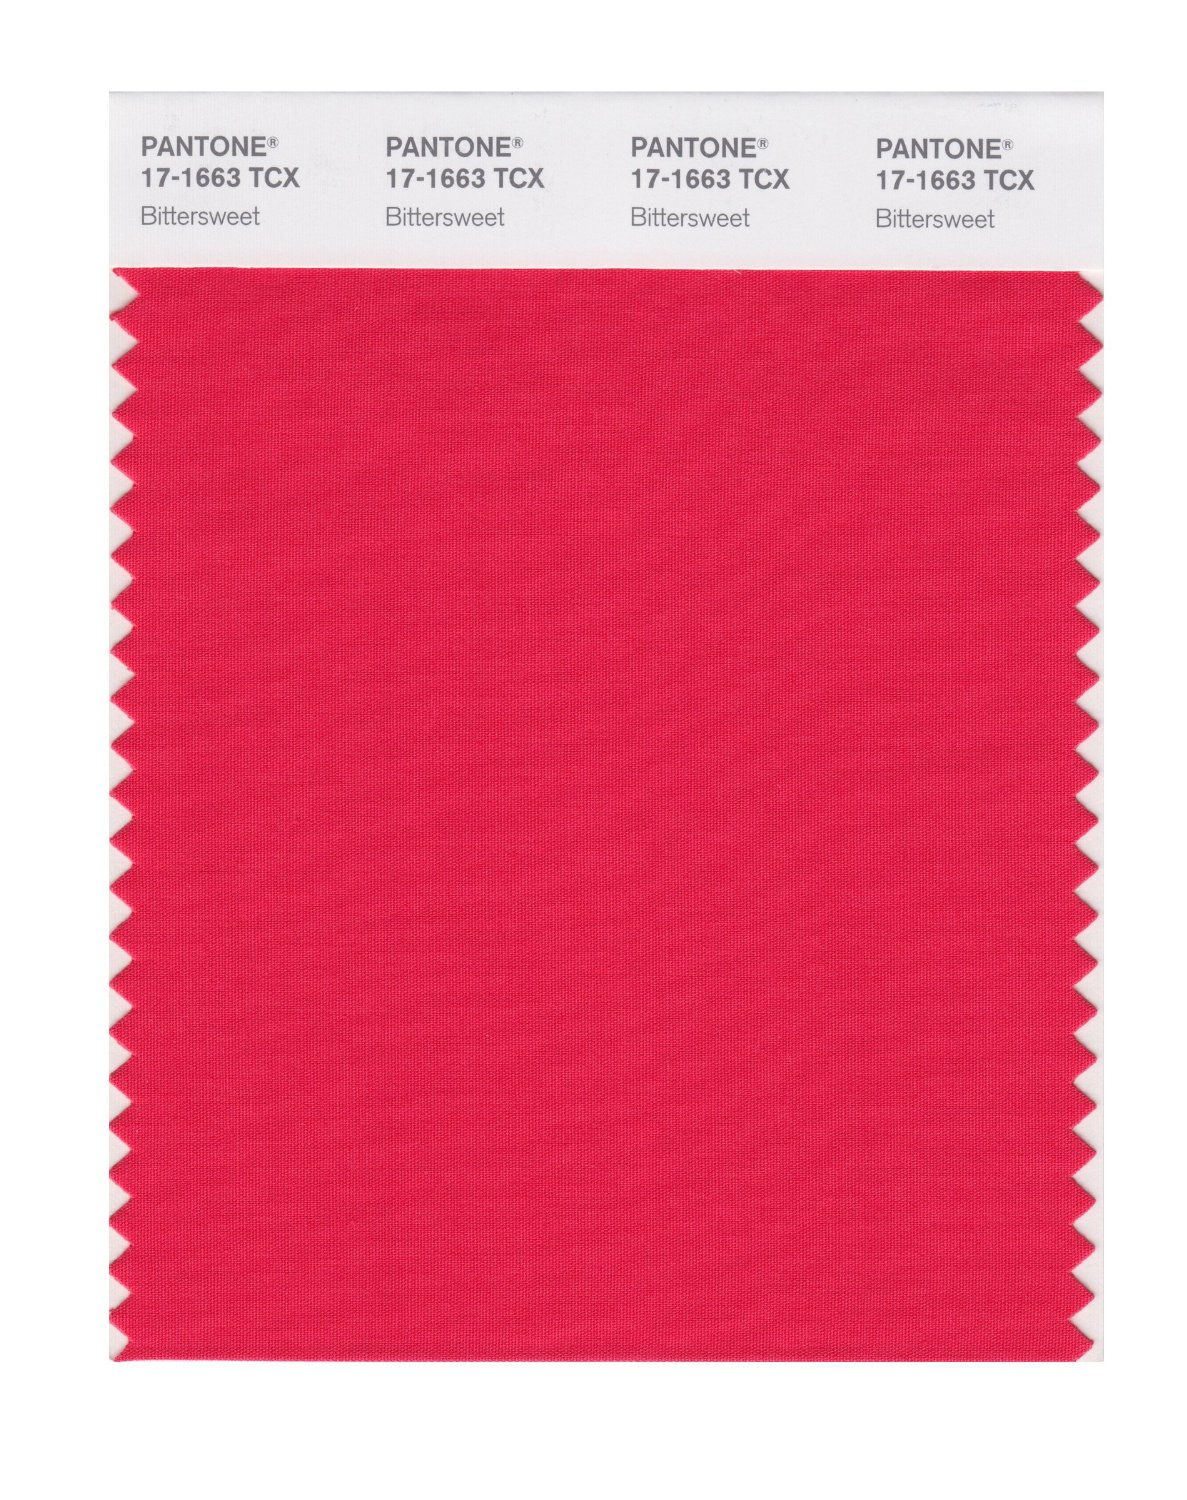 Pantone Smart Swatch 17-1663 Bittersweet